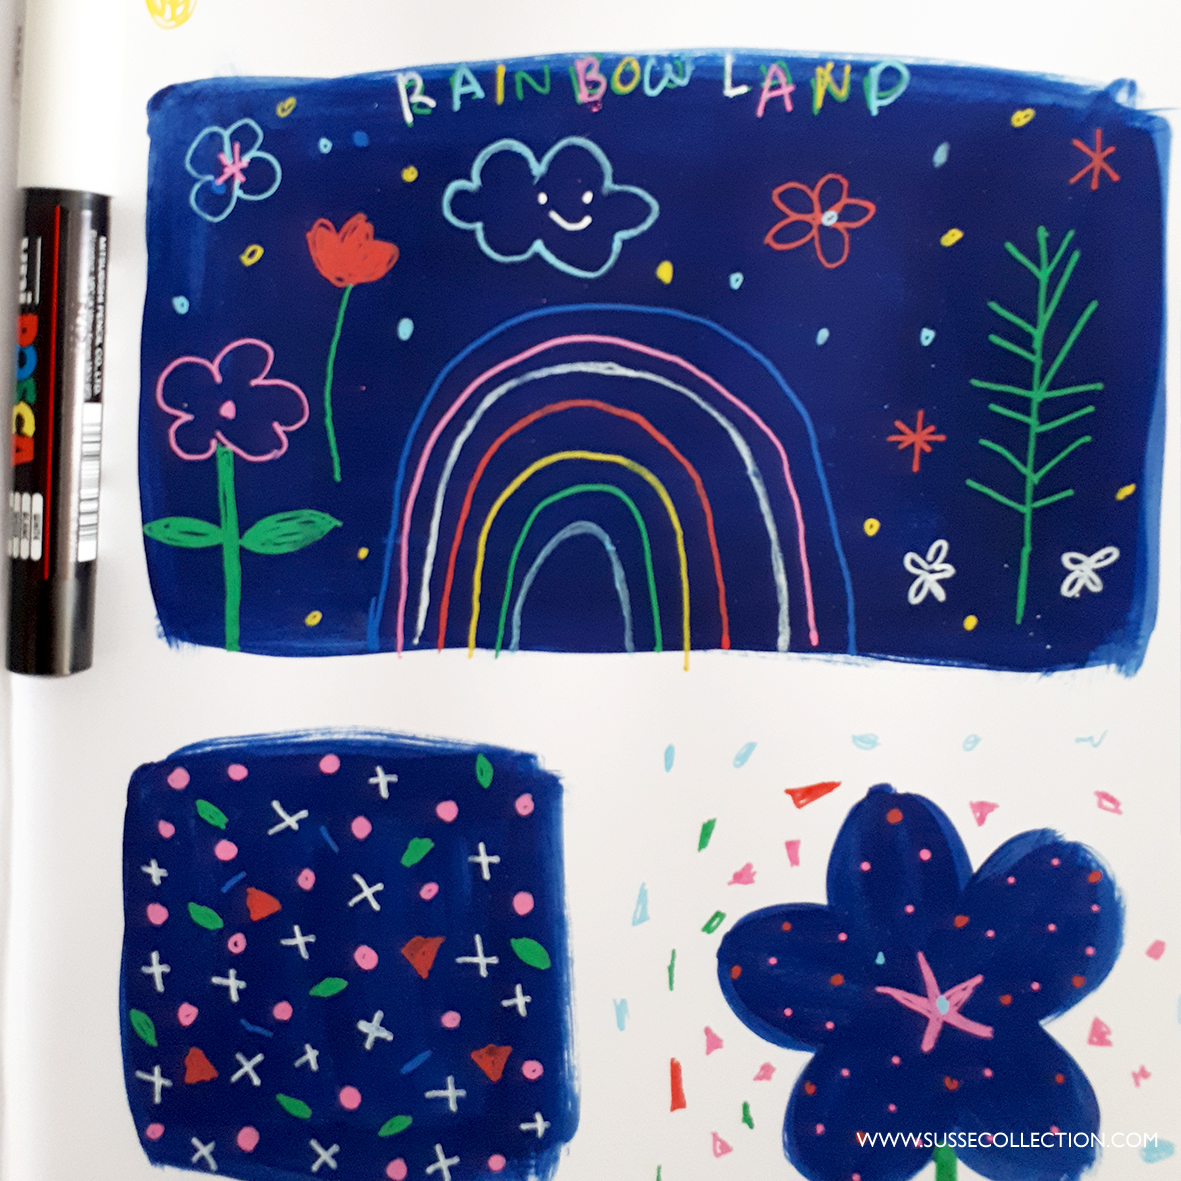 Rainbow land Susse Collection.jpg